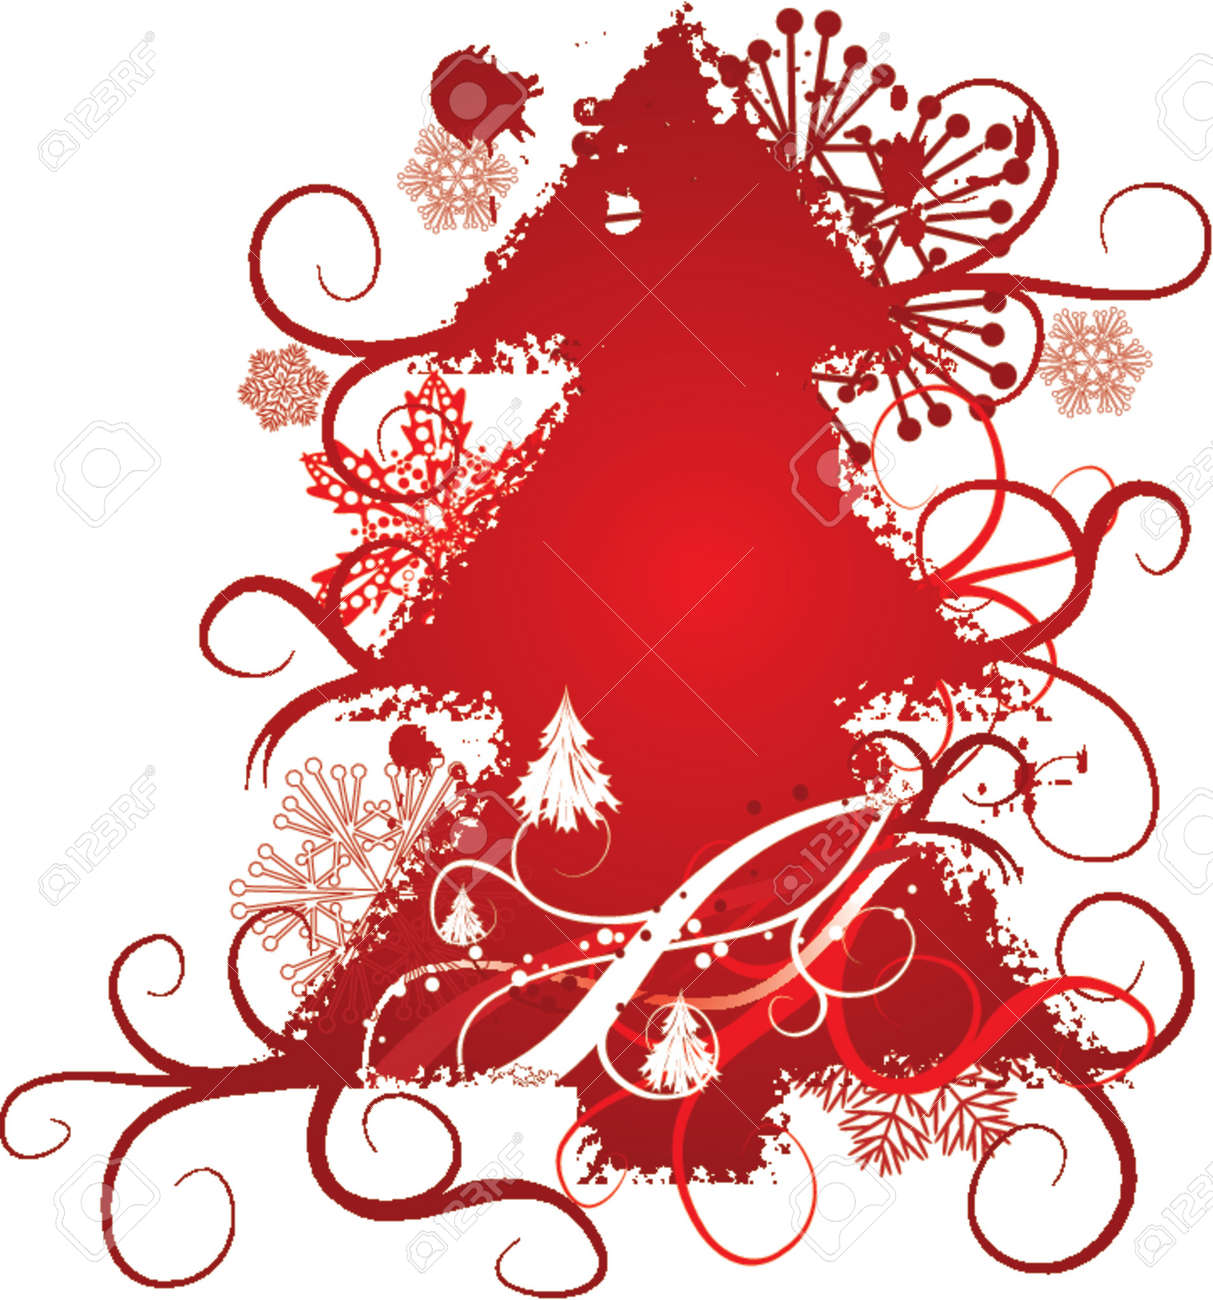 Grunge christmas tree, snowflakes background, vector illustration Stock Vector - 667172